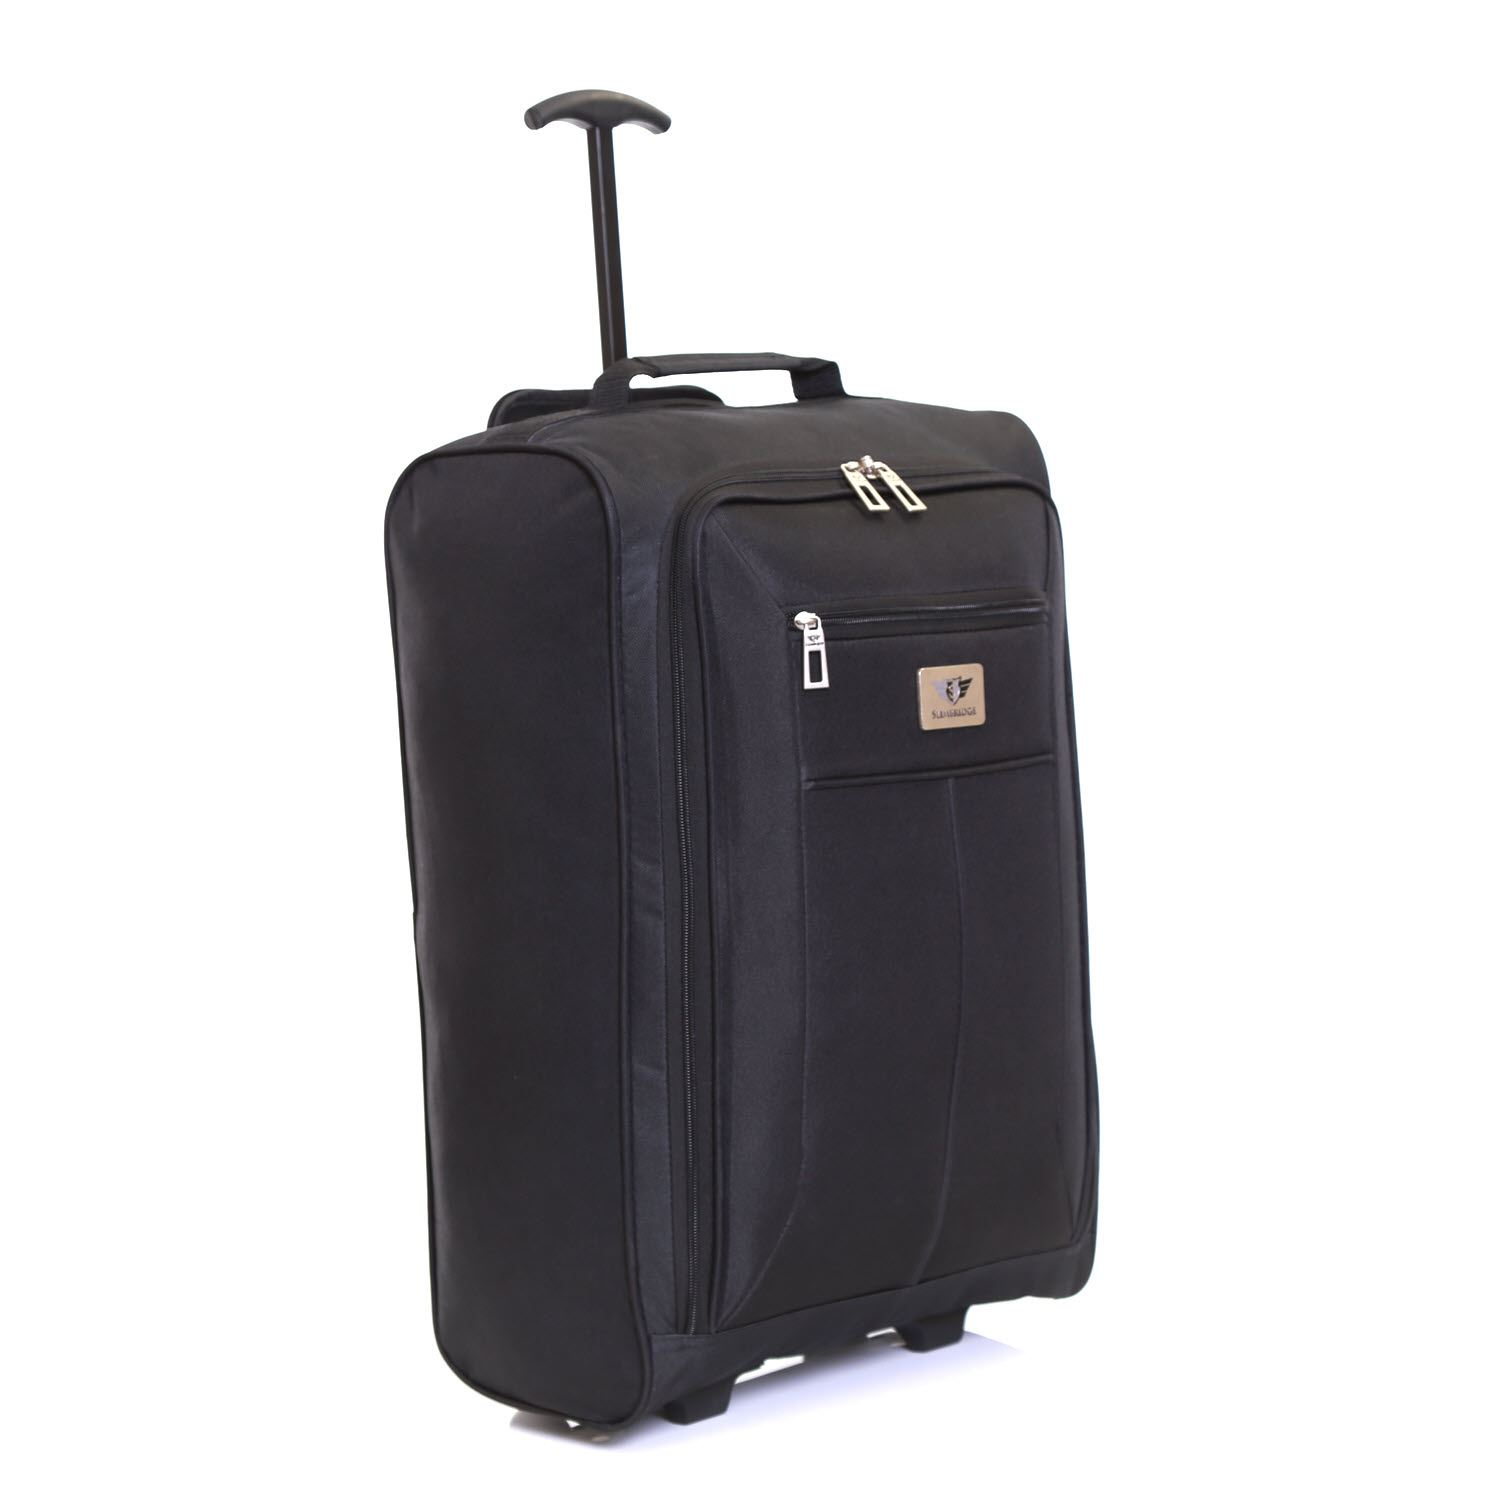 ryanair 55 cm l ger bagage main bagages en cabine valise. Black Bedroom Furniture Sets. Home Design Ideas